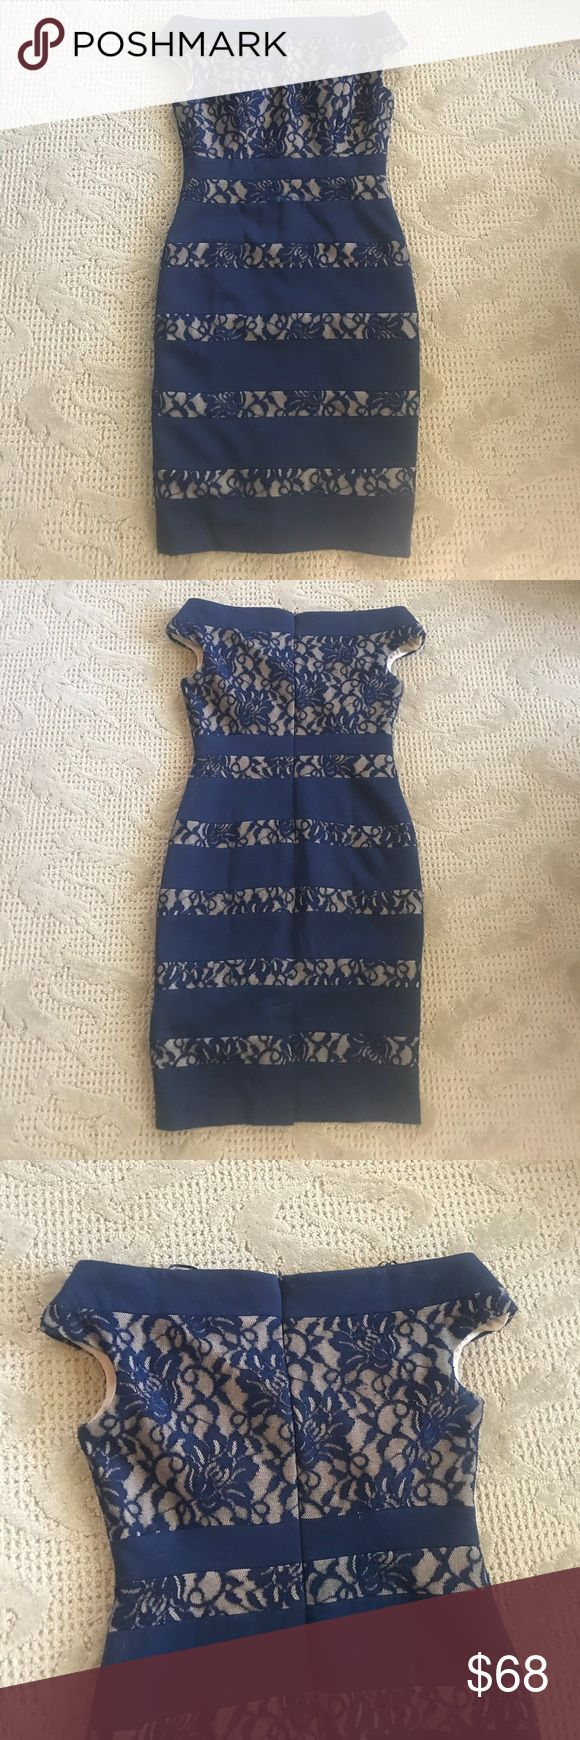 Saks Lace Dress Saks Off the Shoulder Lace Dress; Brand is Jax; Blue and Nude Lace; Lined; Built in Bra Support; Hidden Zip Closure in Back; Hits at Knee; Excellent Condition Saks Fifth Avenue Dresses Midi